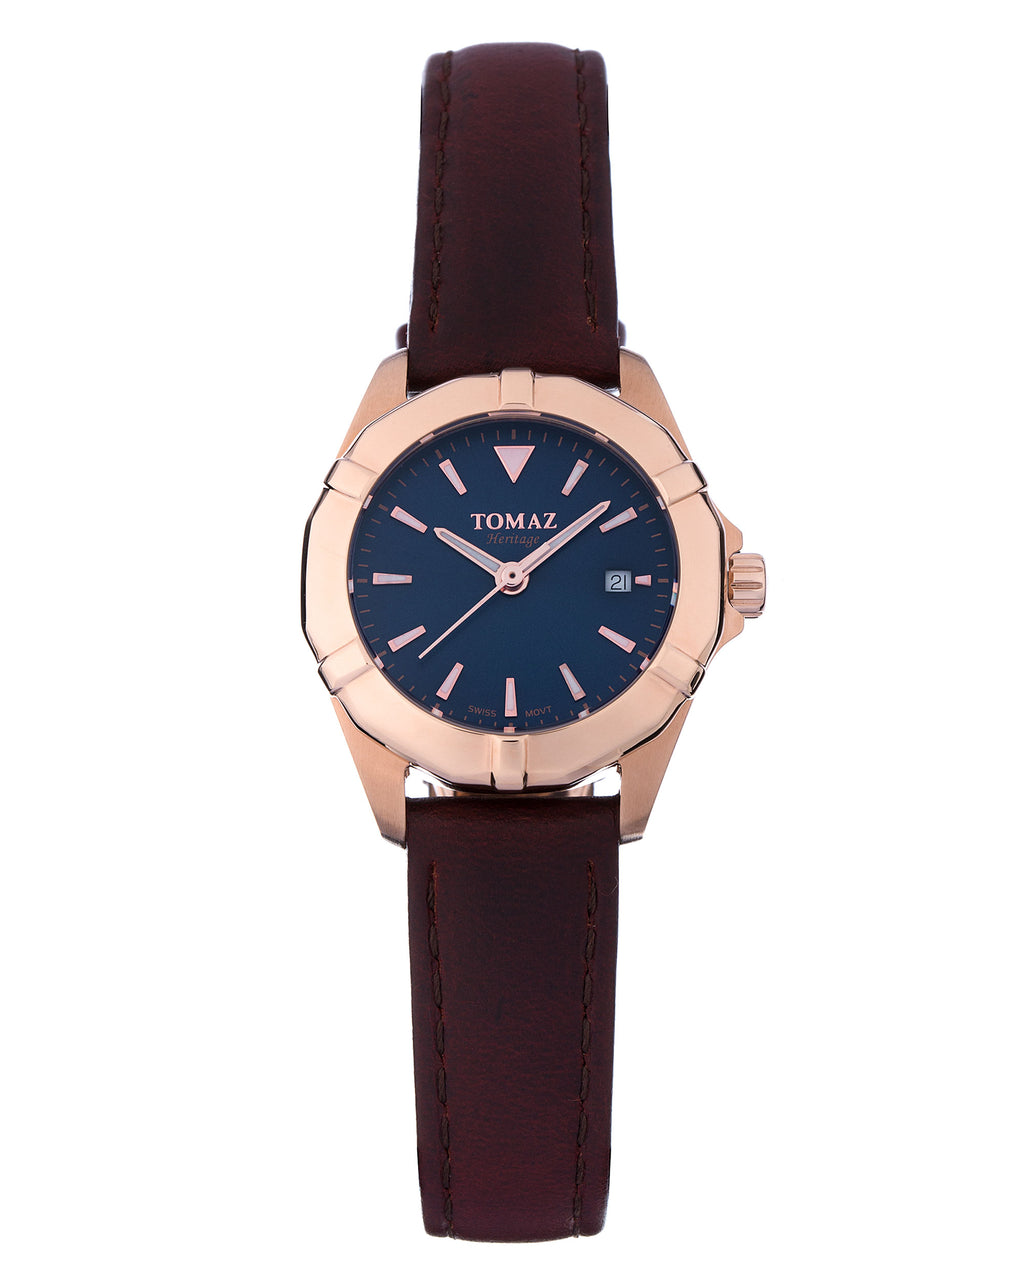 Tomaz Ladies Watch TQ009 (Rose Gold/Navy)